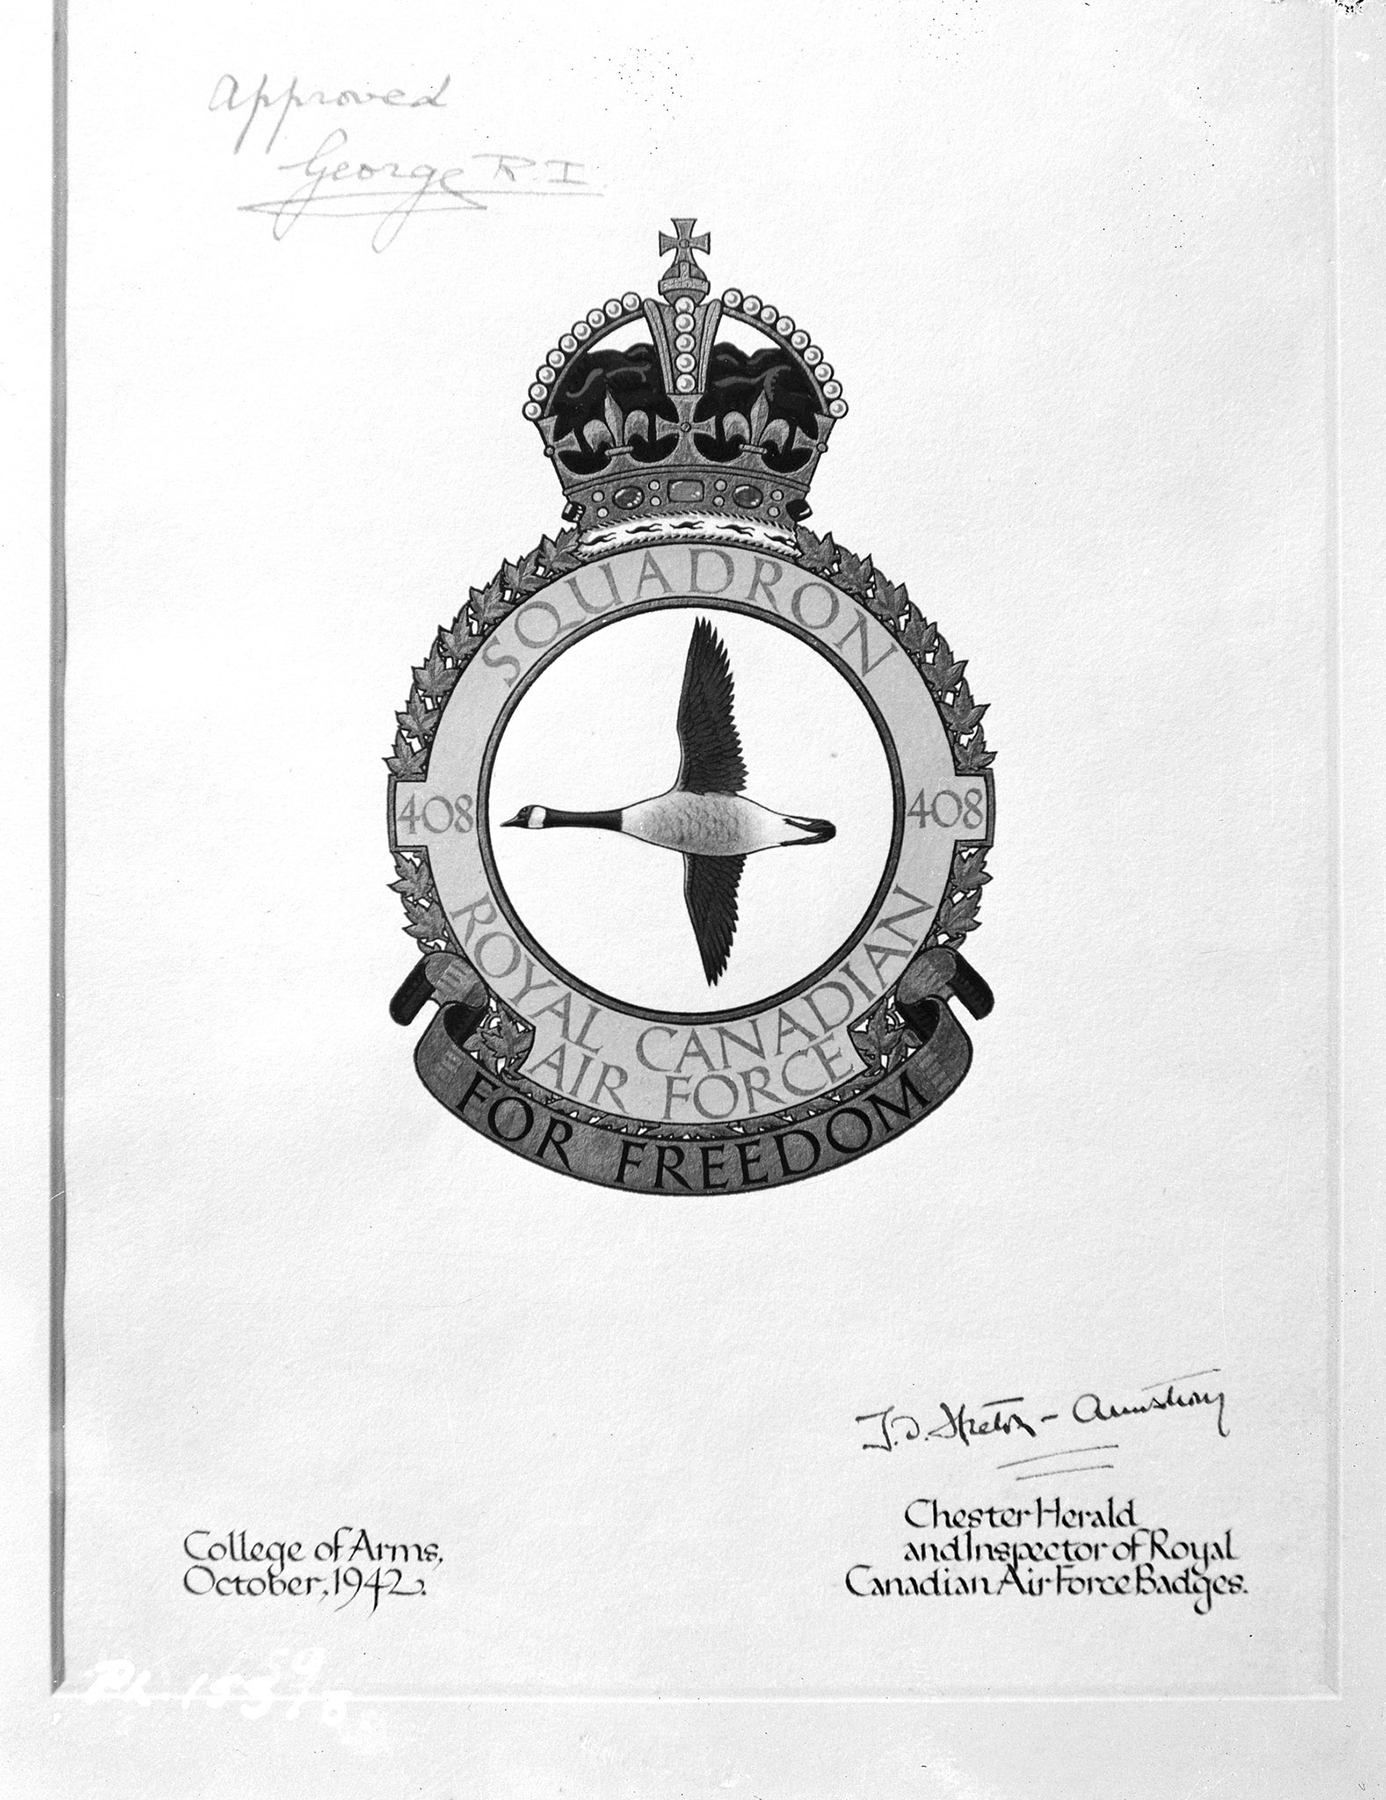 An image, taken January 14, 1943, of the signed official announcement of the new 408 Bomber Squadron RCAF Overseas badge. PHOTO: DND Archives